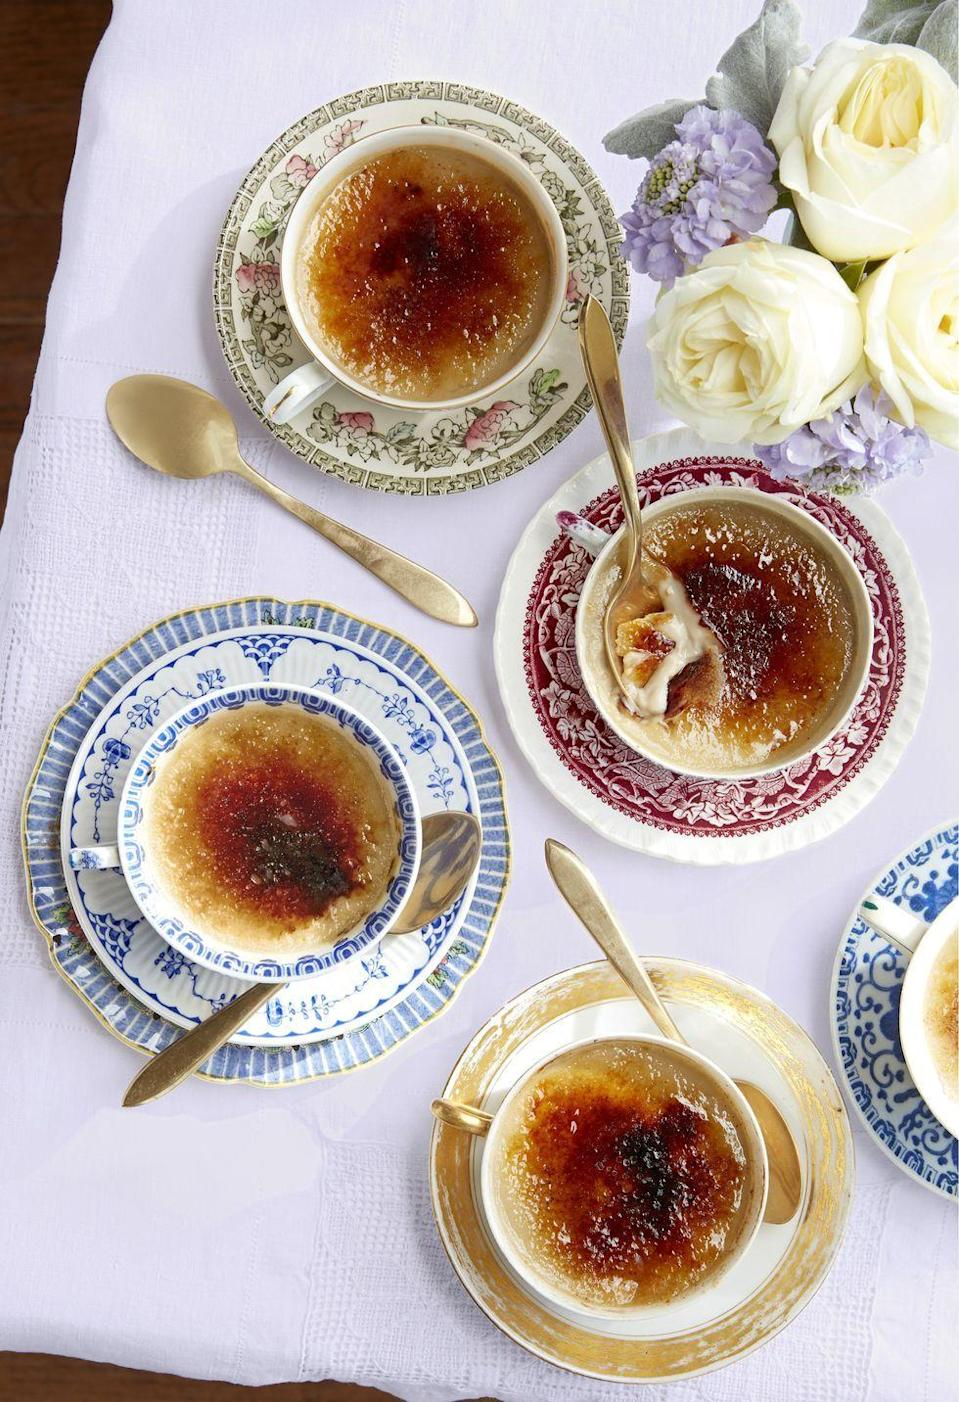 """<p>If Dad loves all things British (and has a sweet tooth) try this recipe. Traditional crackly-topped custard gets infused with Earl Grey tea for a fancy treat. Make it fancier by cooking it in vintage teacups.<br></p><p><strong><a href=""""https://www.countryliving.com/food-drinks/a26868461/earl-gray-creme-brulee-recipe/"""" rel=""""nofollow noopener"""" target=""""_blank"""" data-ylk=""""slk:Get the recipe"""" class=""""link rapid-noclick-resp"""">Get the recipe</a>.</strong> </p>"""